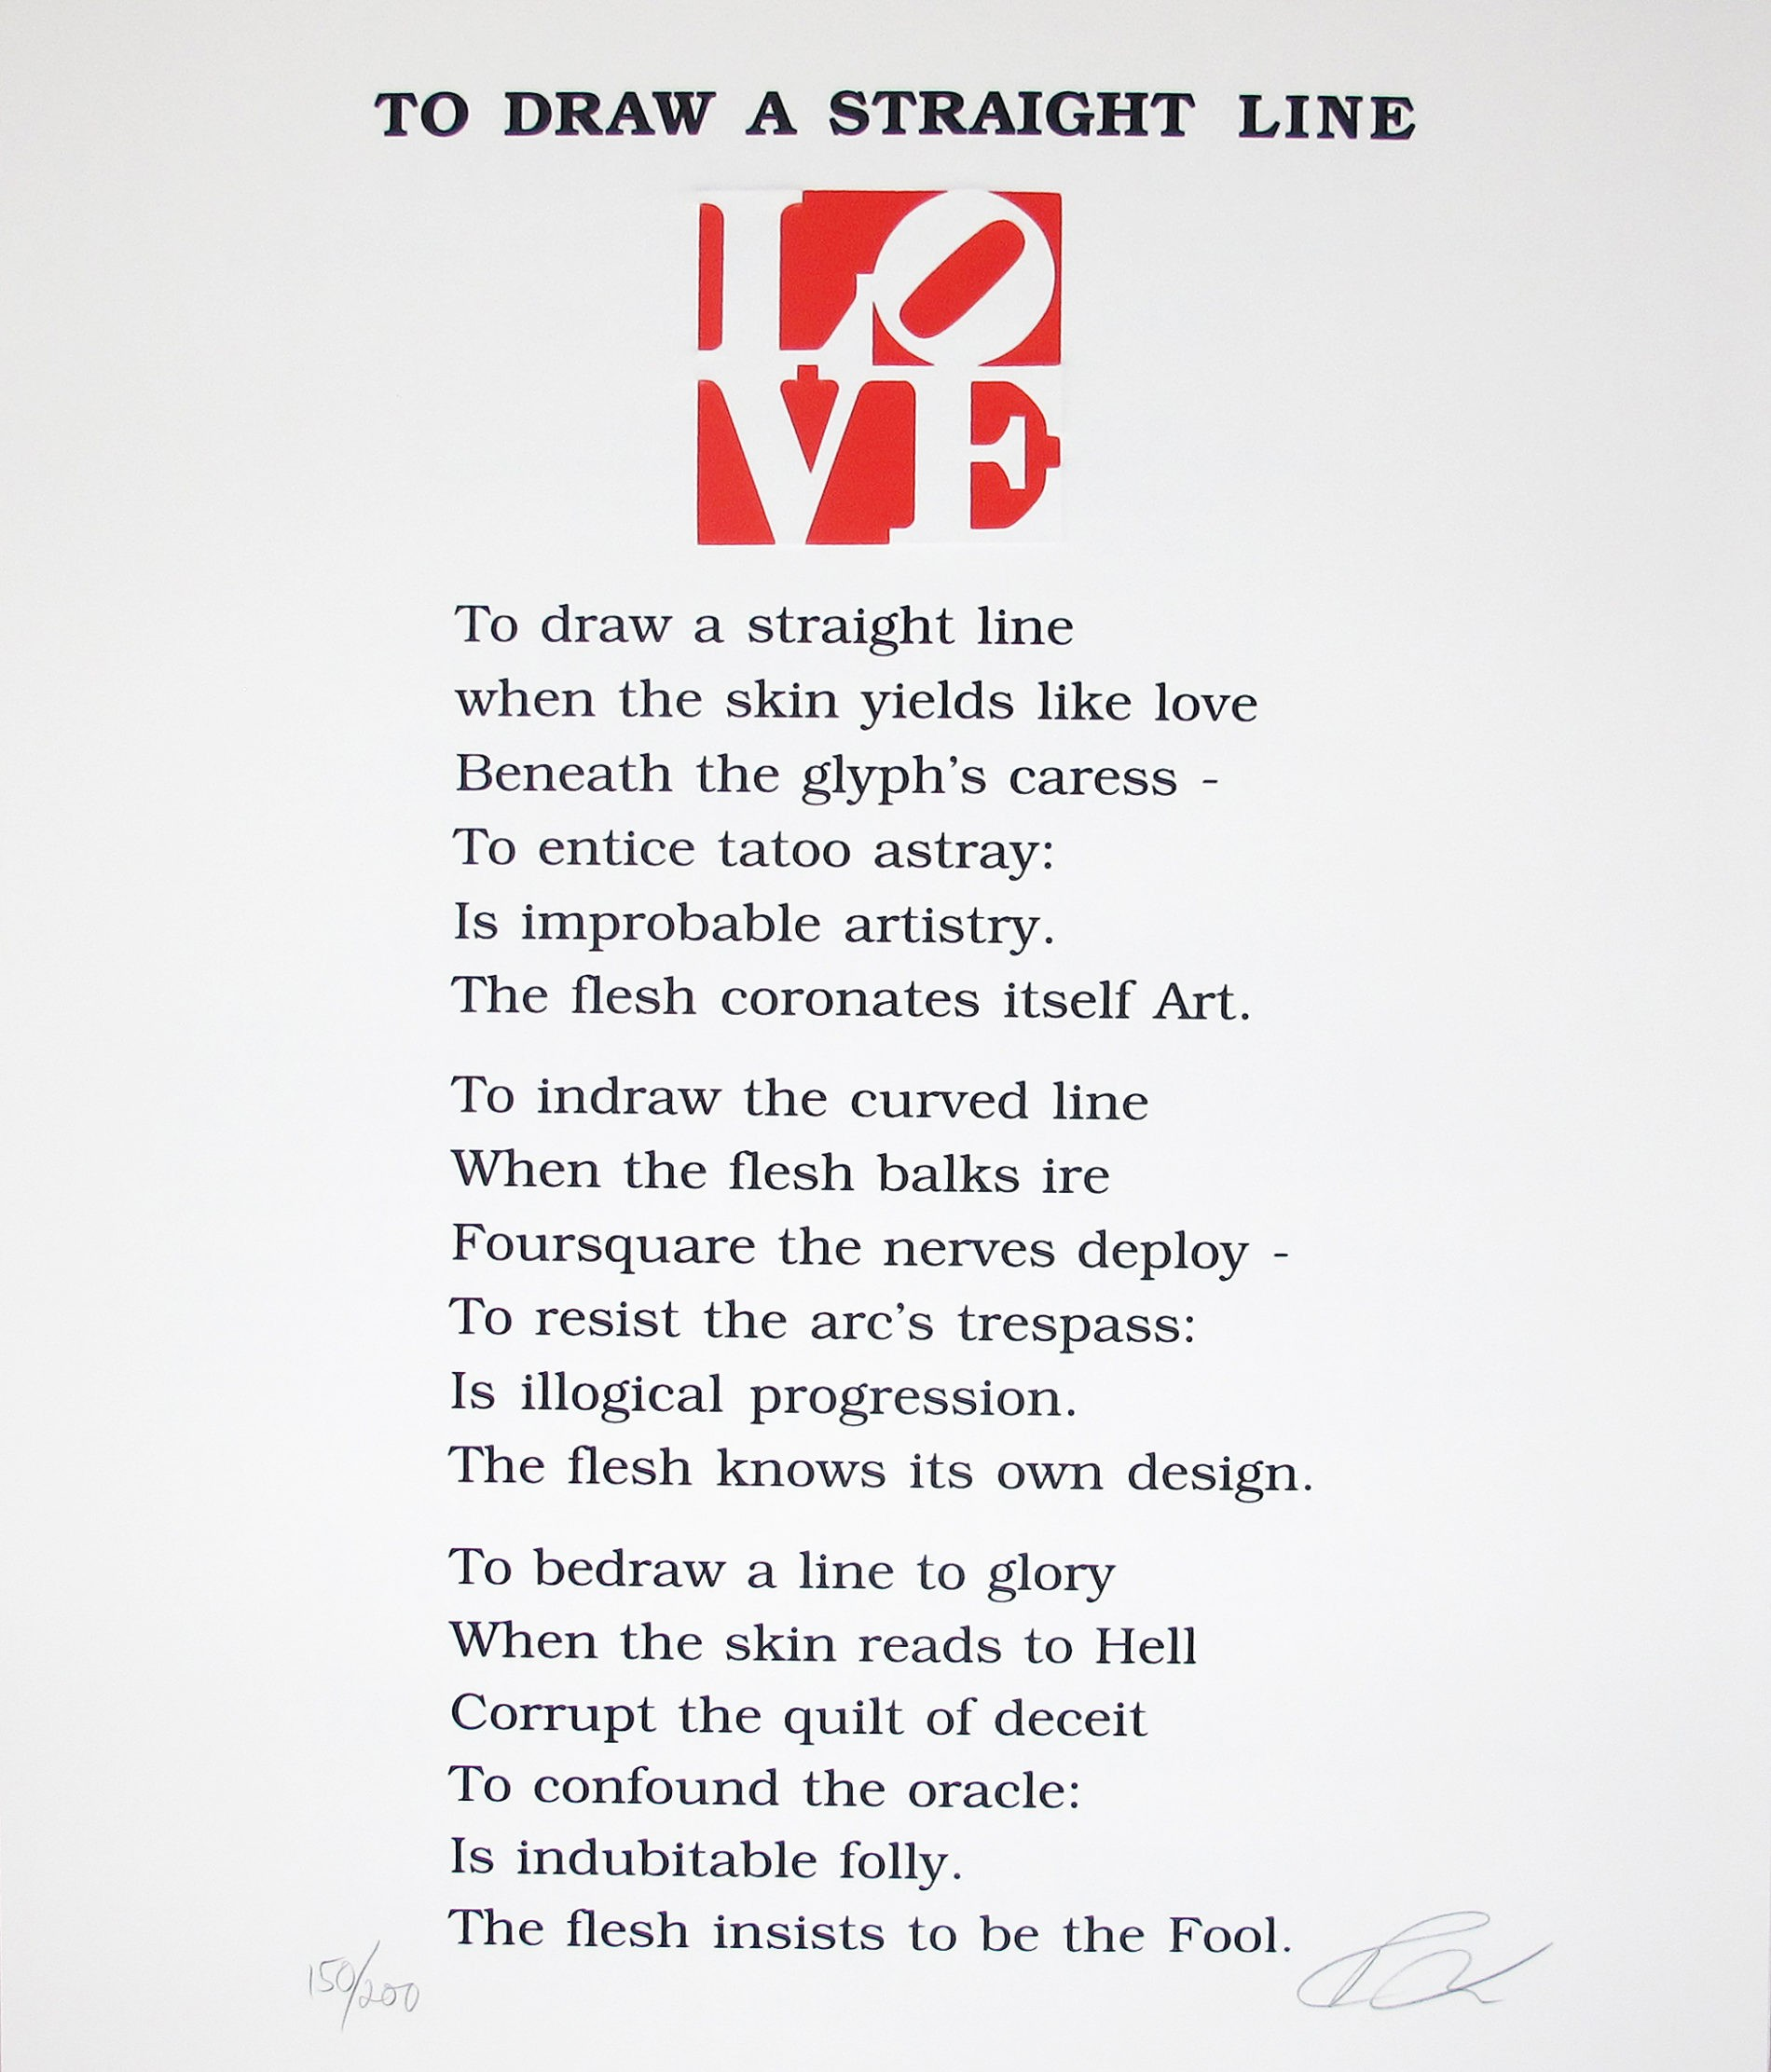 Robert Indiana | The Book of Love Poem | To Draw a Straight Line | 1996 | Image of Artists' work.